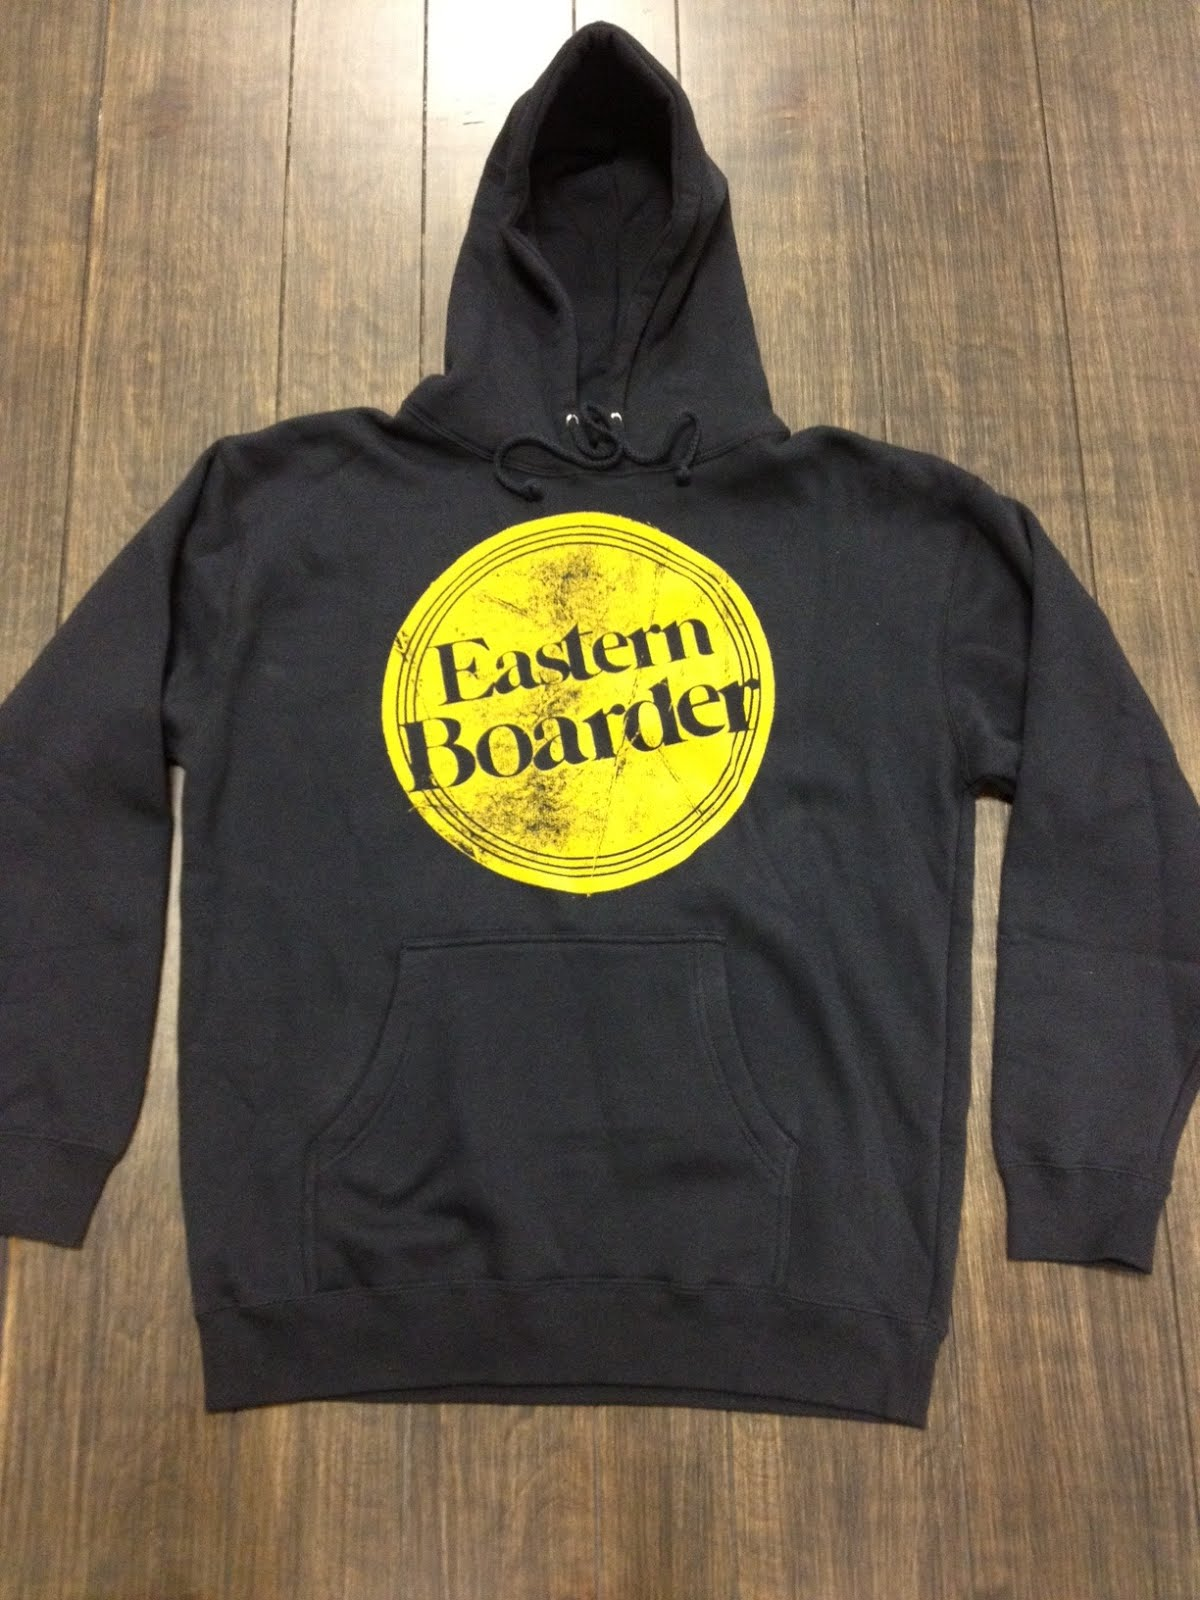 Find Eastern Boarder in Nashua with Address, Phone number from Yahoo US Local. Includes Eastern Boarder Reviews, maps & directions to Eastern Boarder in Nashua and more from Yahoo US Local4/5(7).